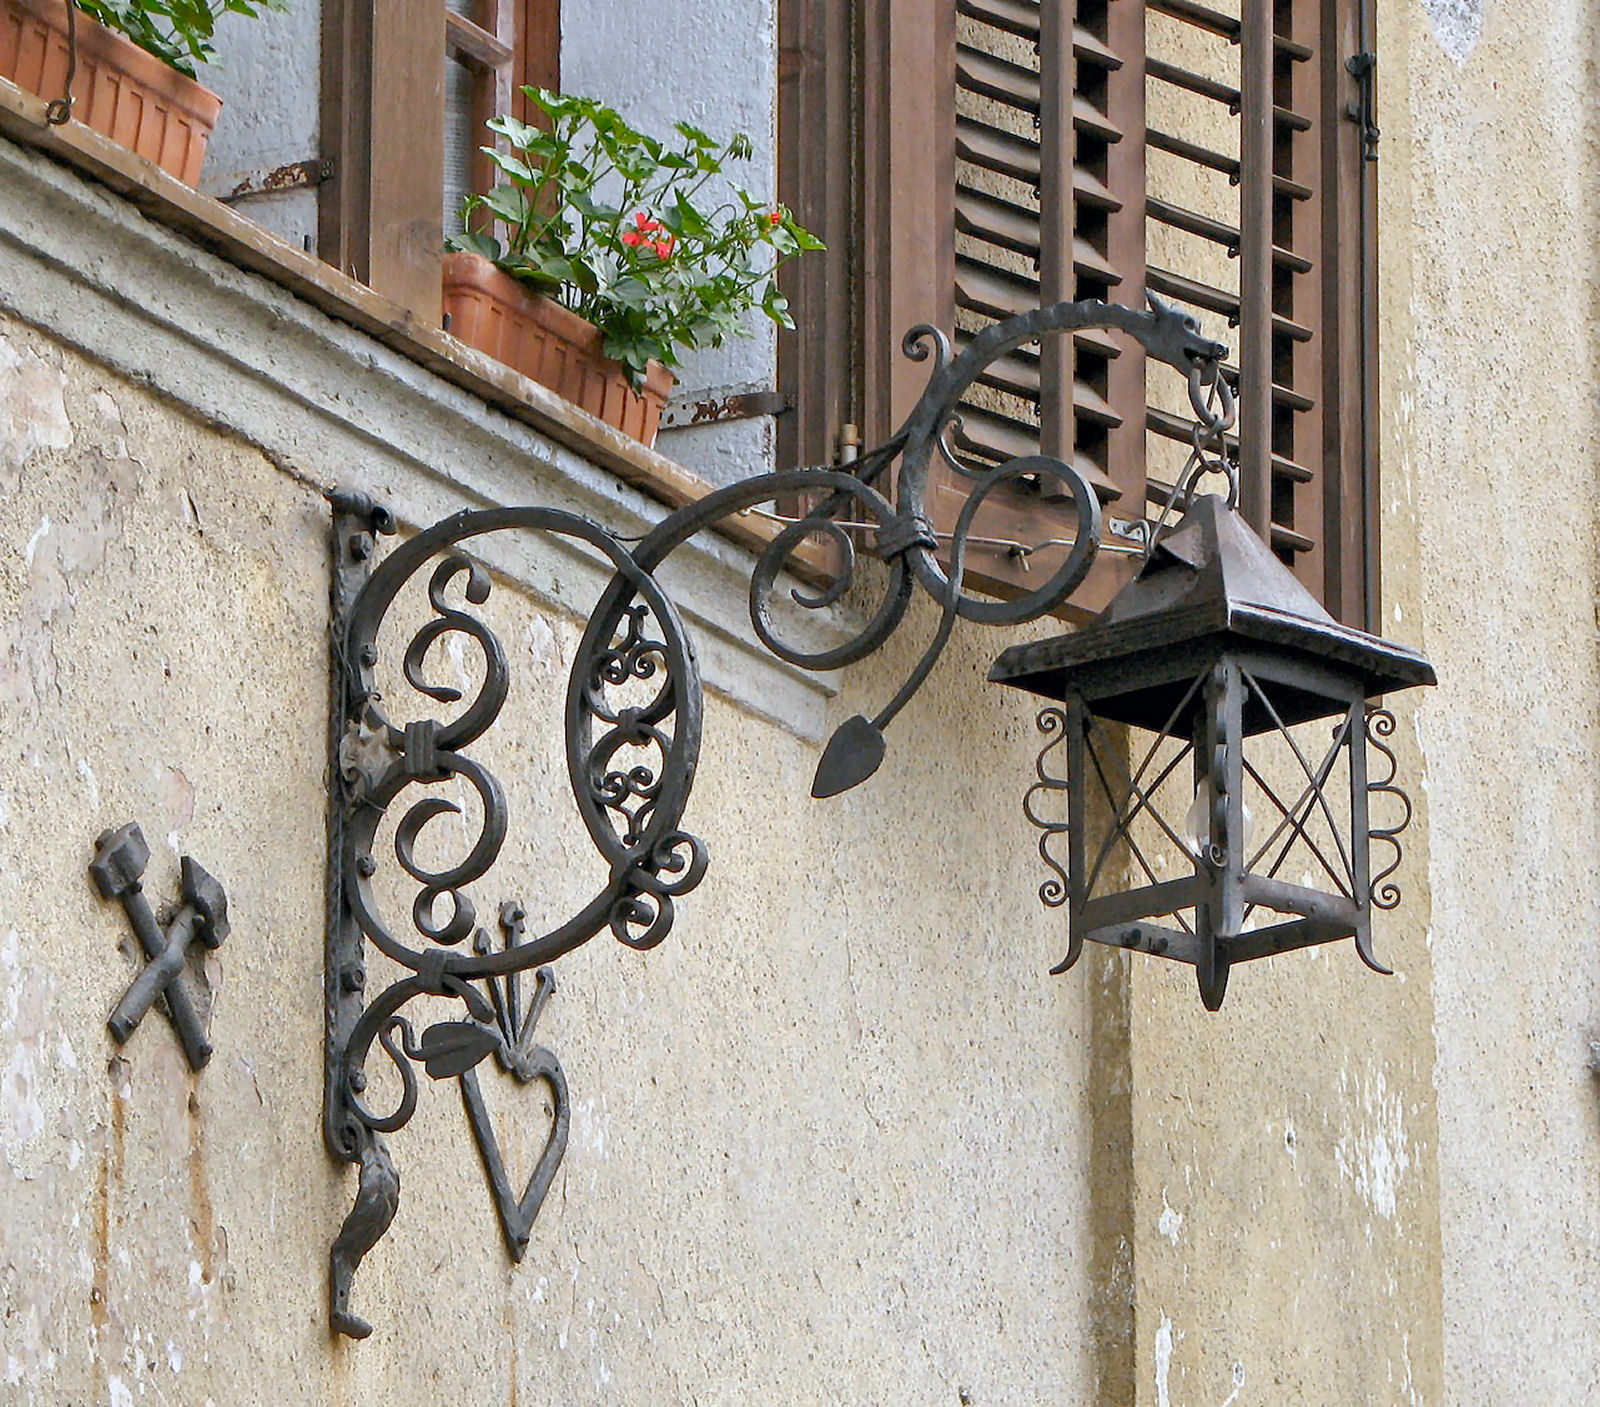 Hand forged street lamp in the village of Kropa, Slovenia